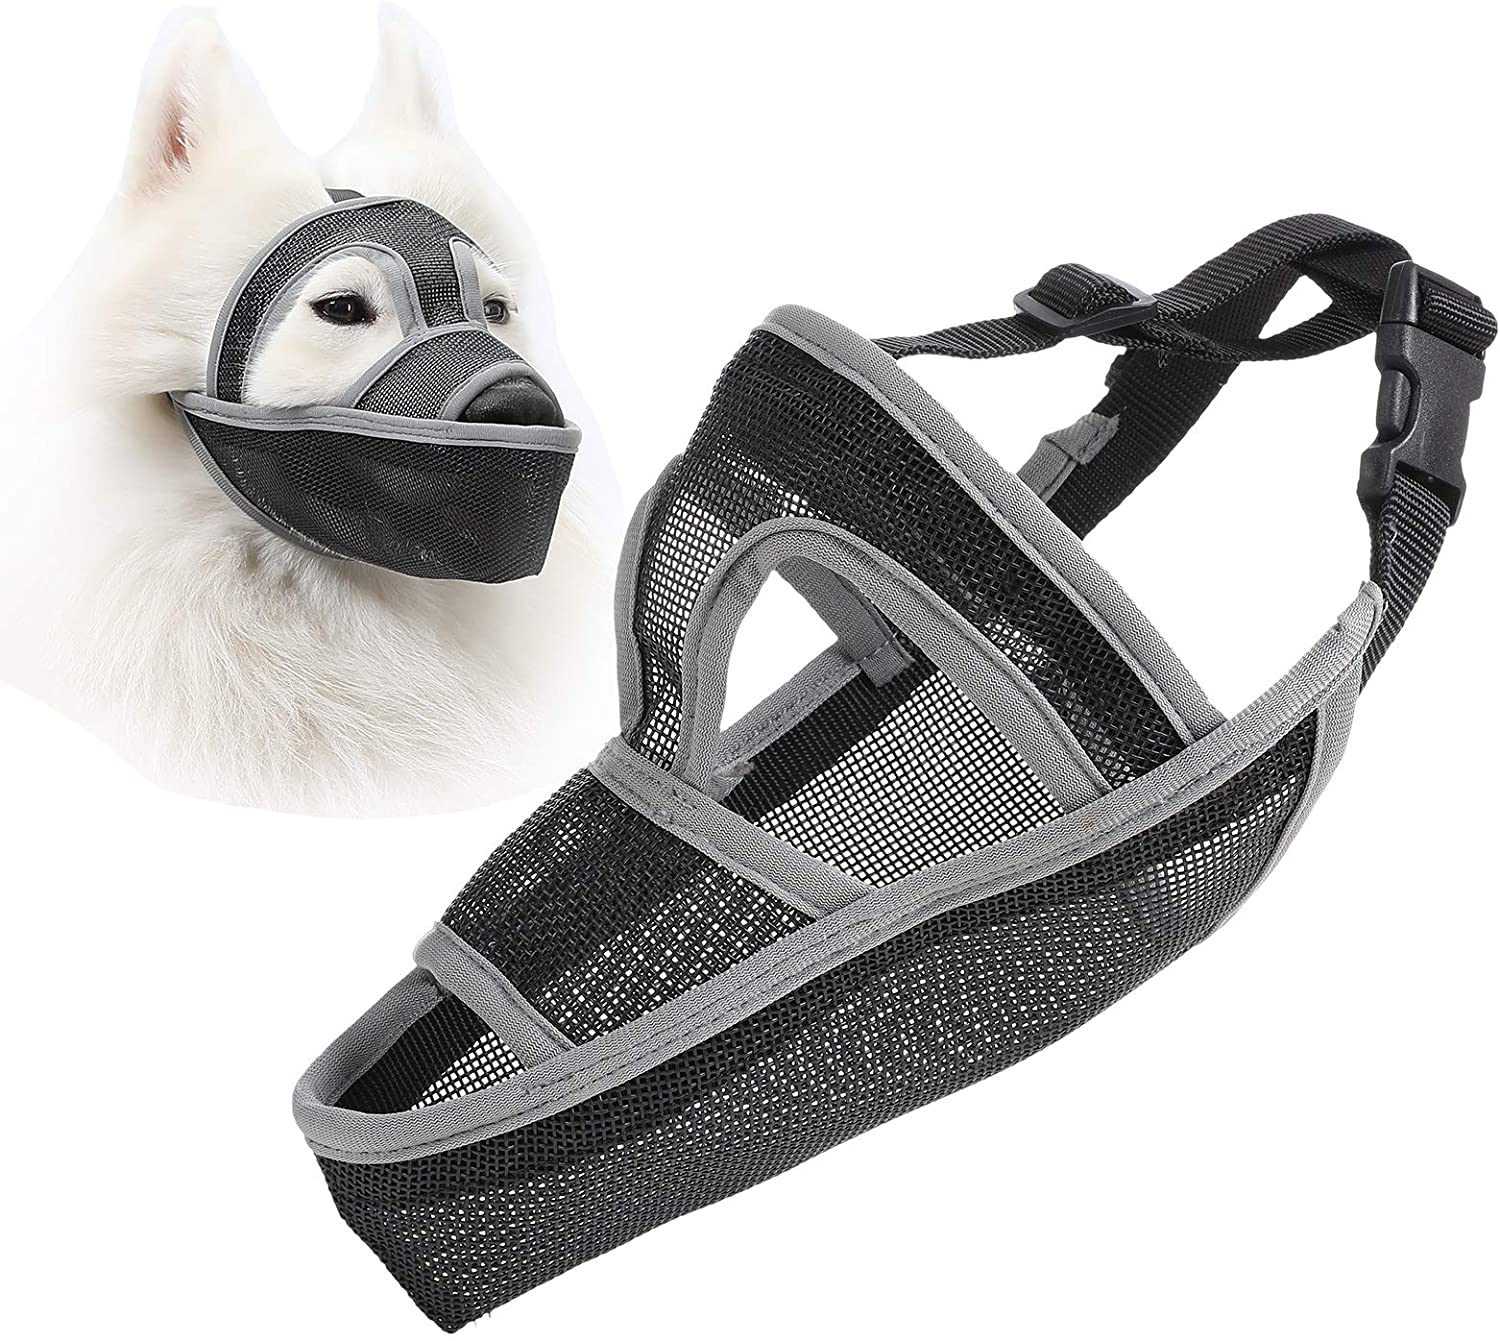 Mayerzon Dog Muzzle, Breathable Mesh Muzzle for Biting, Licking Wound and Unwanted Chewing, 6 Sizes for Small, Medium and Large Dogs, Able to Drink and Feed